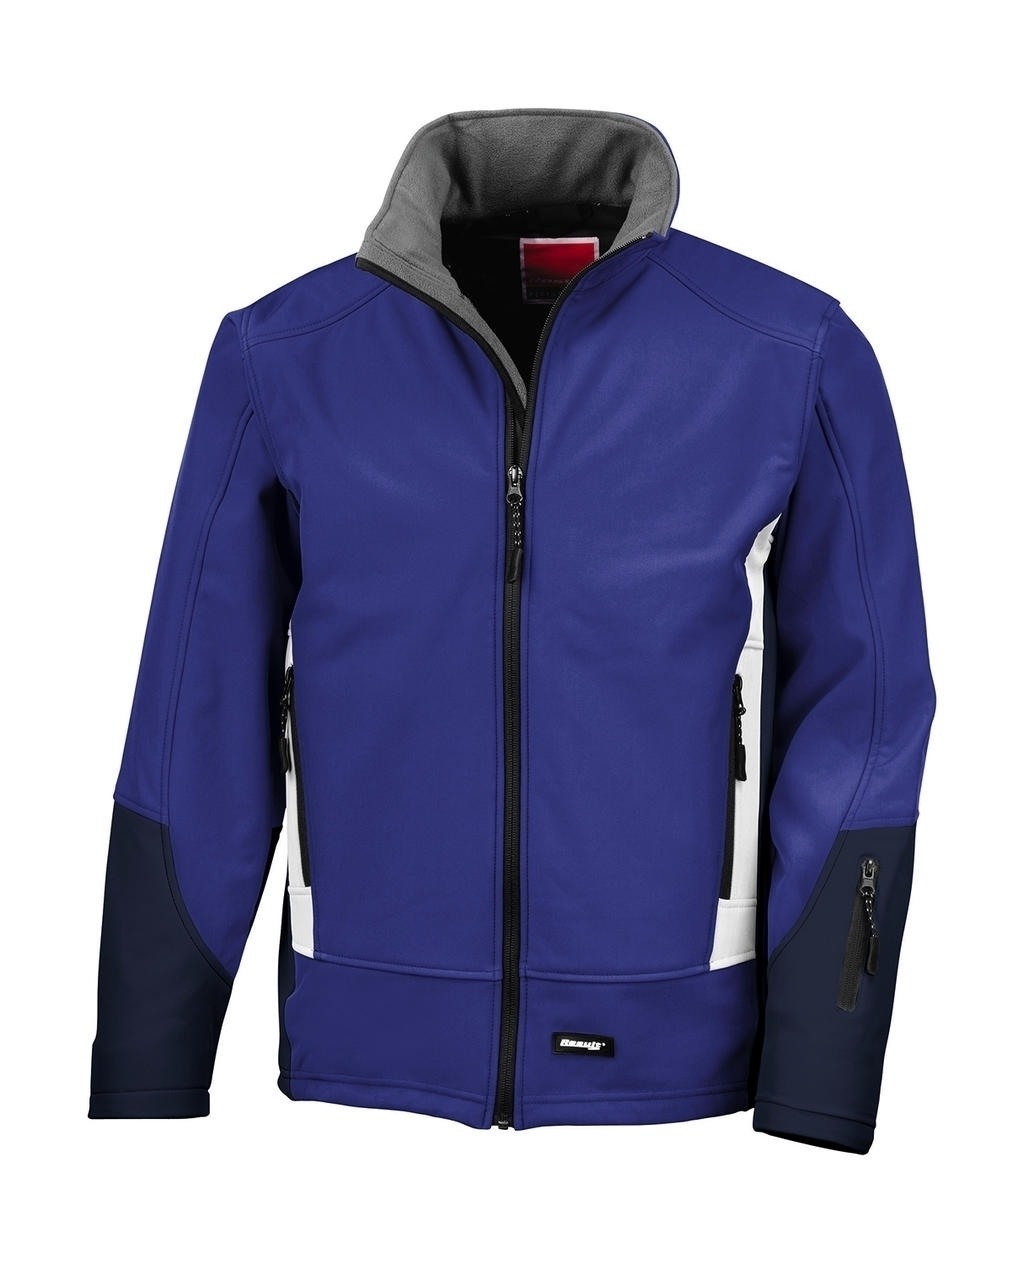 Blade Soft Shell Jacket Royal/Navy/Pale Grey Bleu